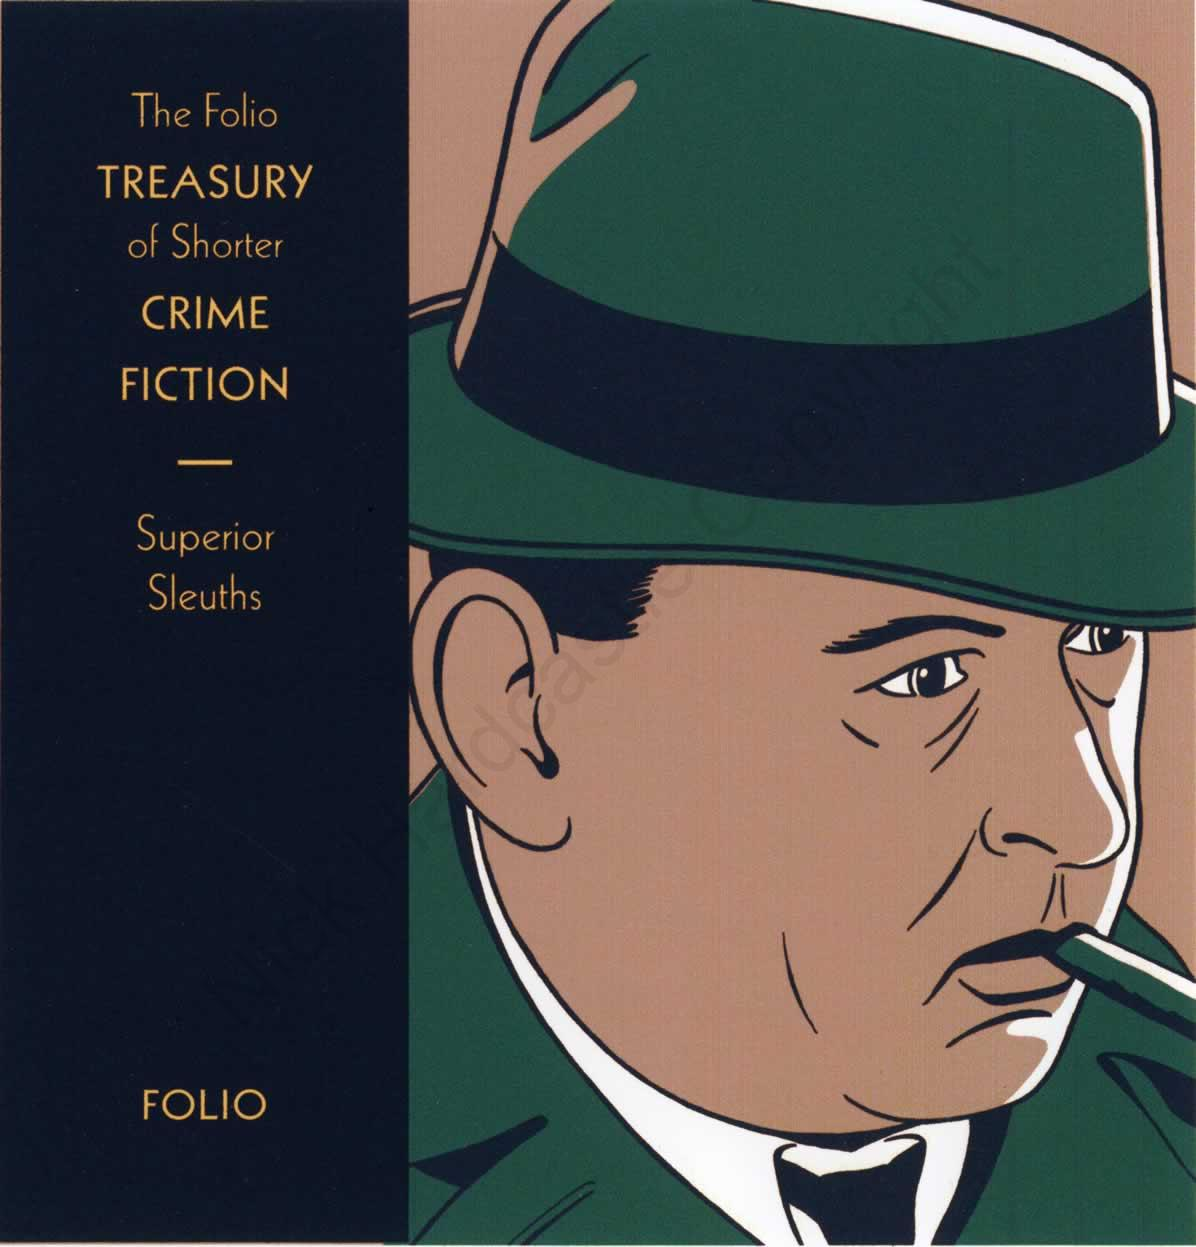 Superior Sleuths - Folio Society